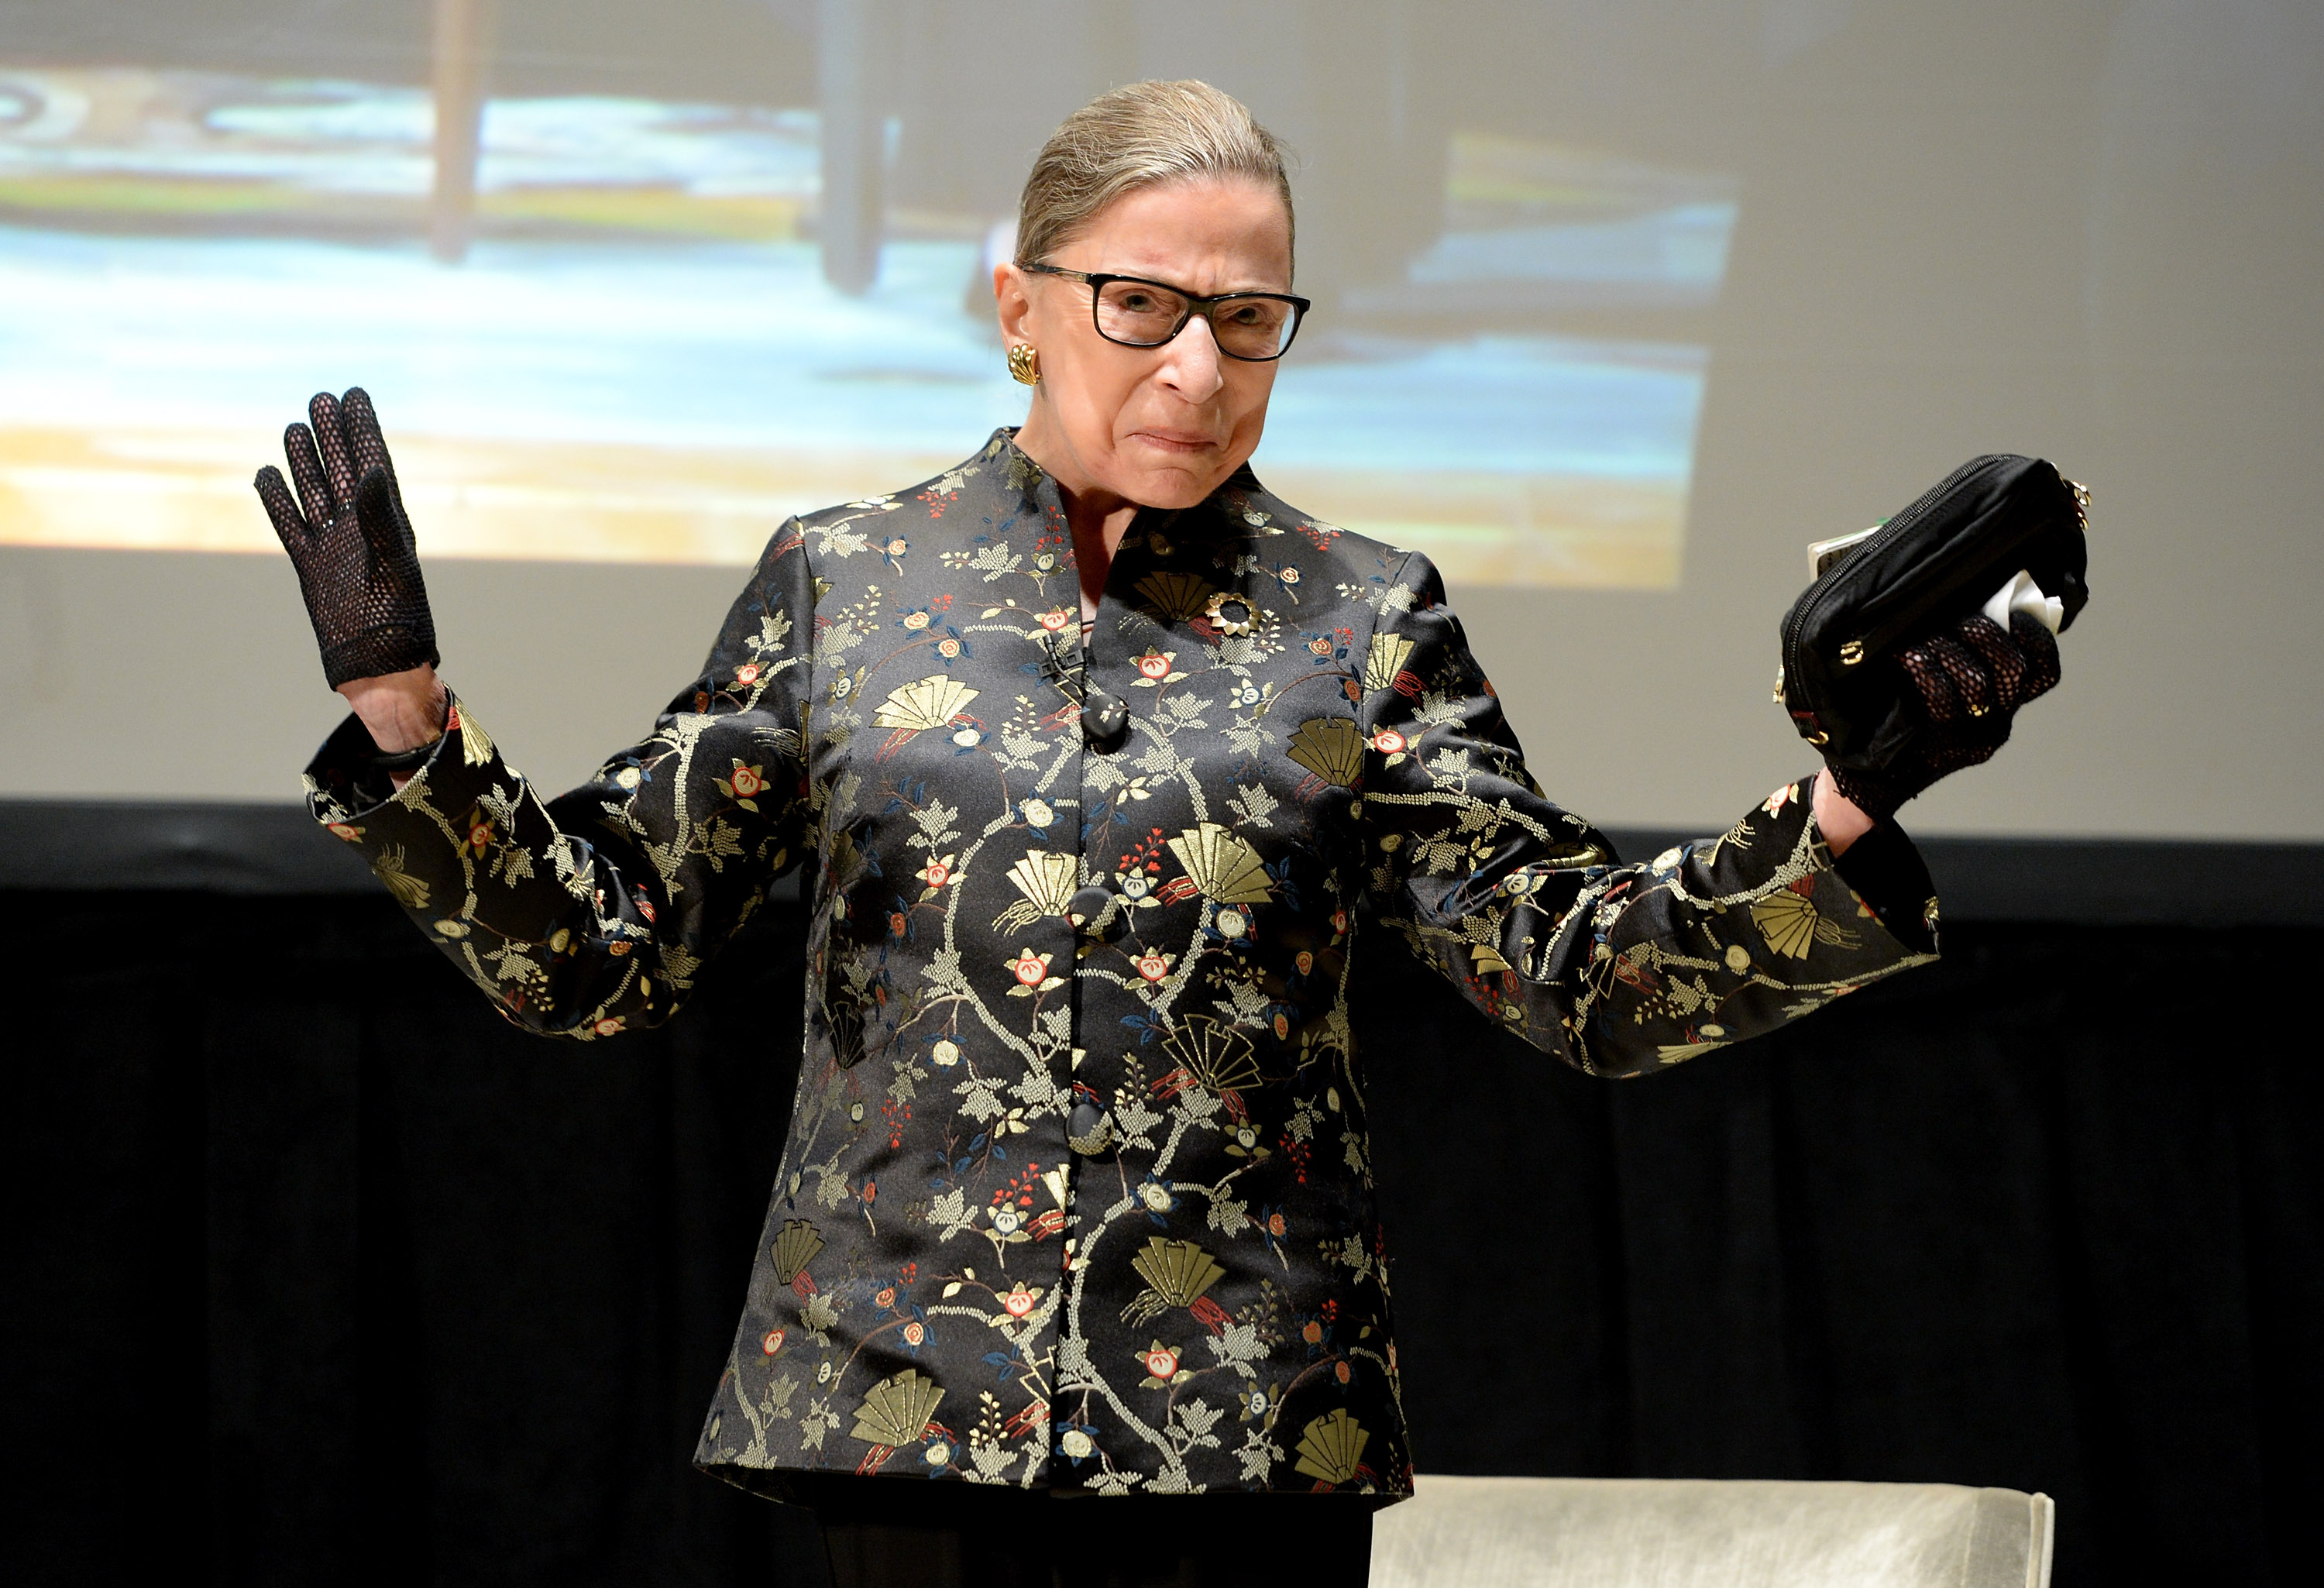 Ruth Bader Ginsburg The Supreme Court Justice Does 20 Push Ups A Day Fortune